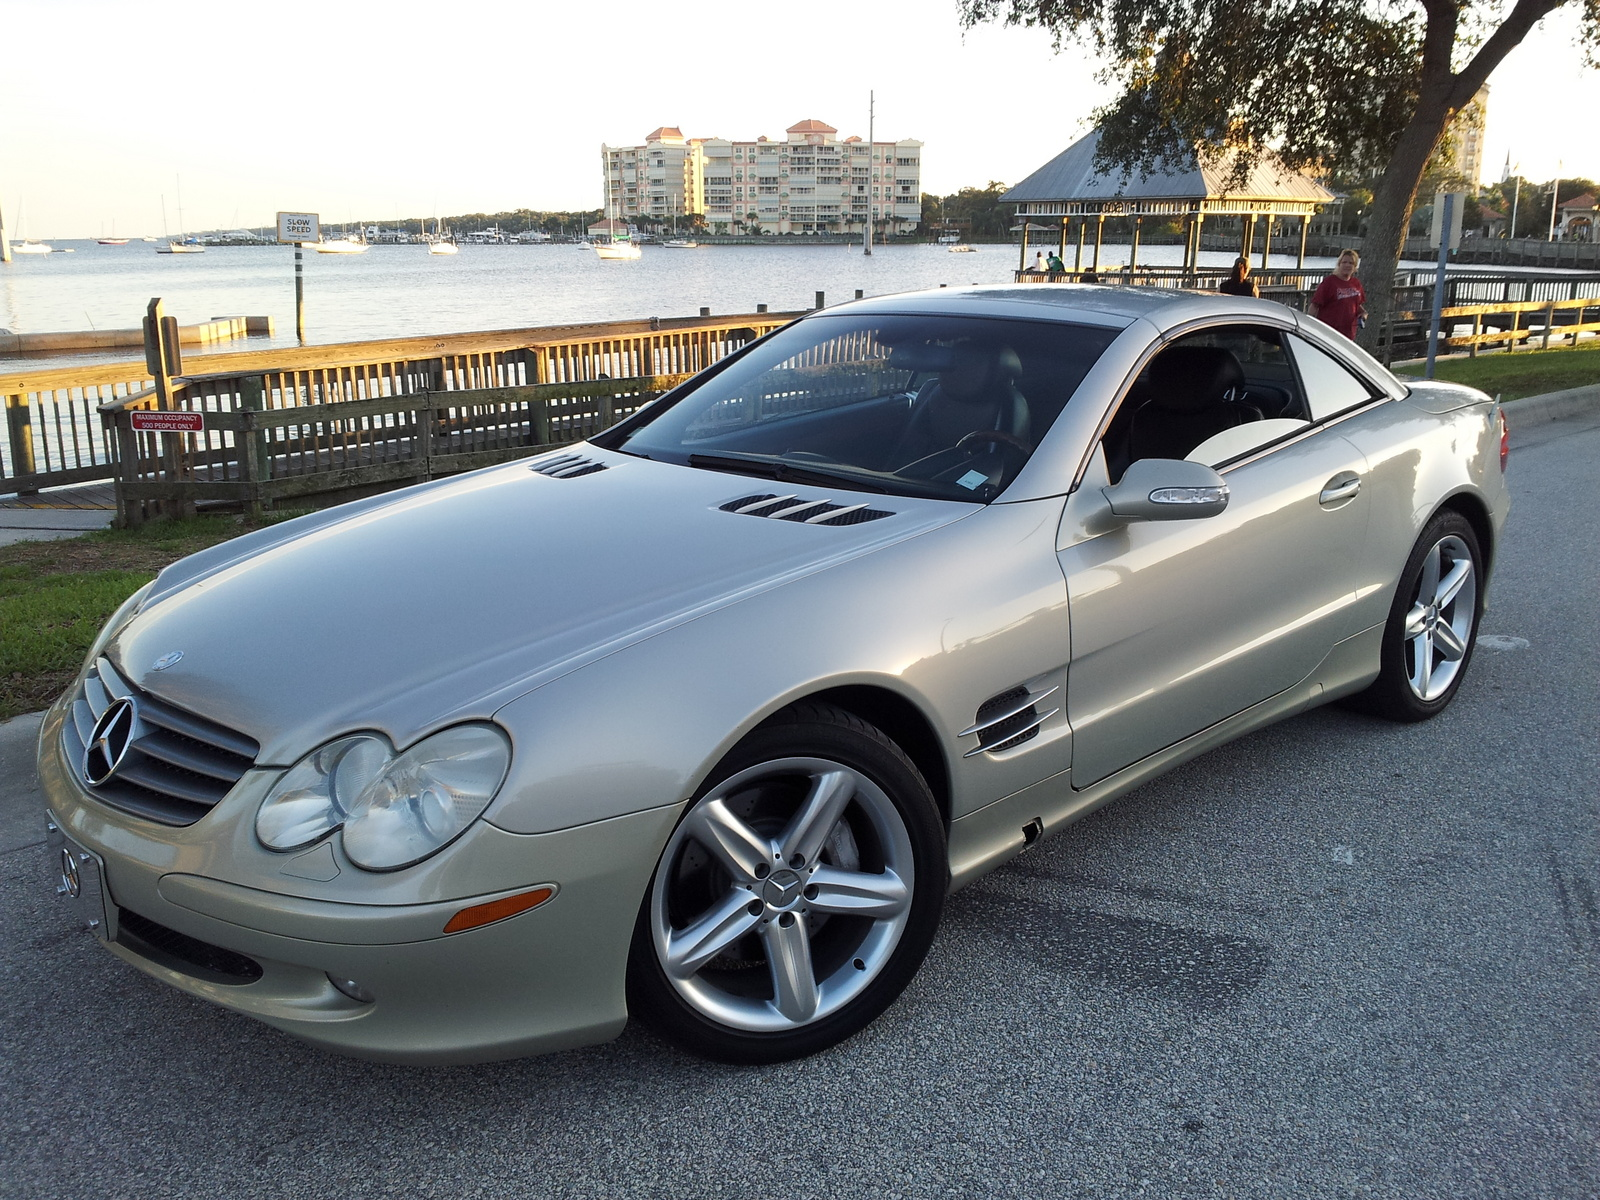 2003 mercedes benz sl class pictures cargurus for Mercedes benz sl classic